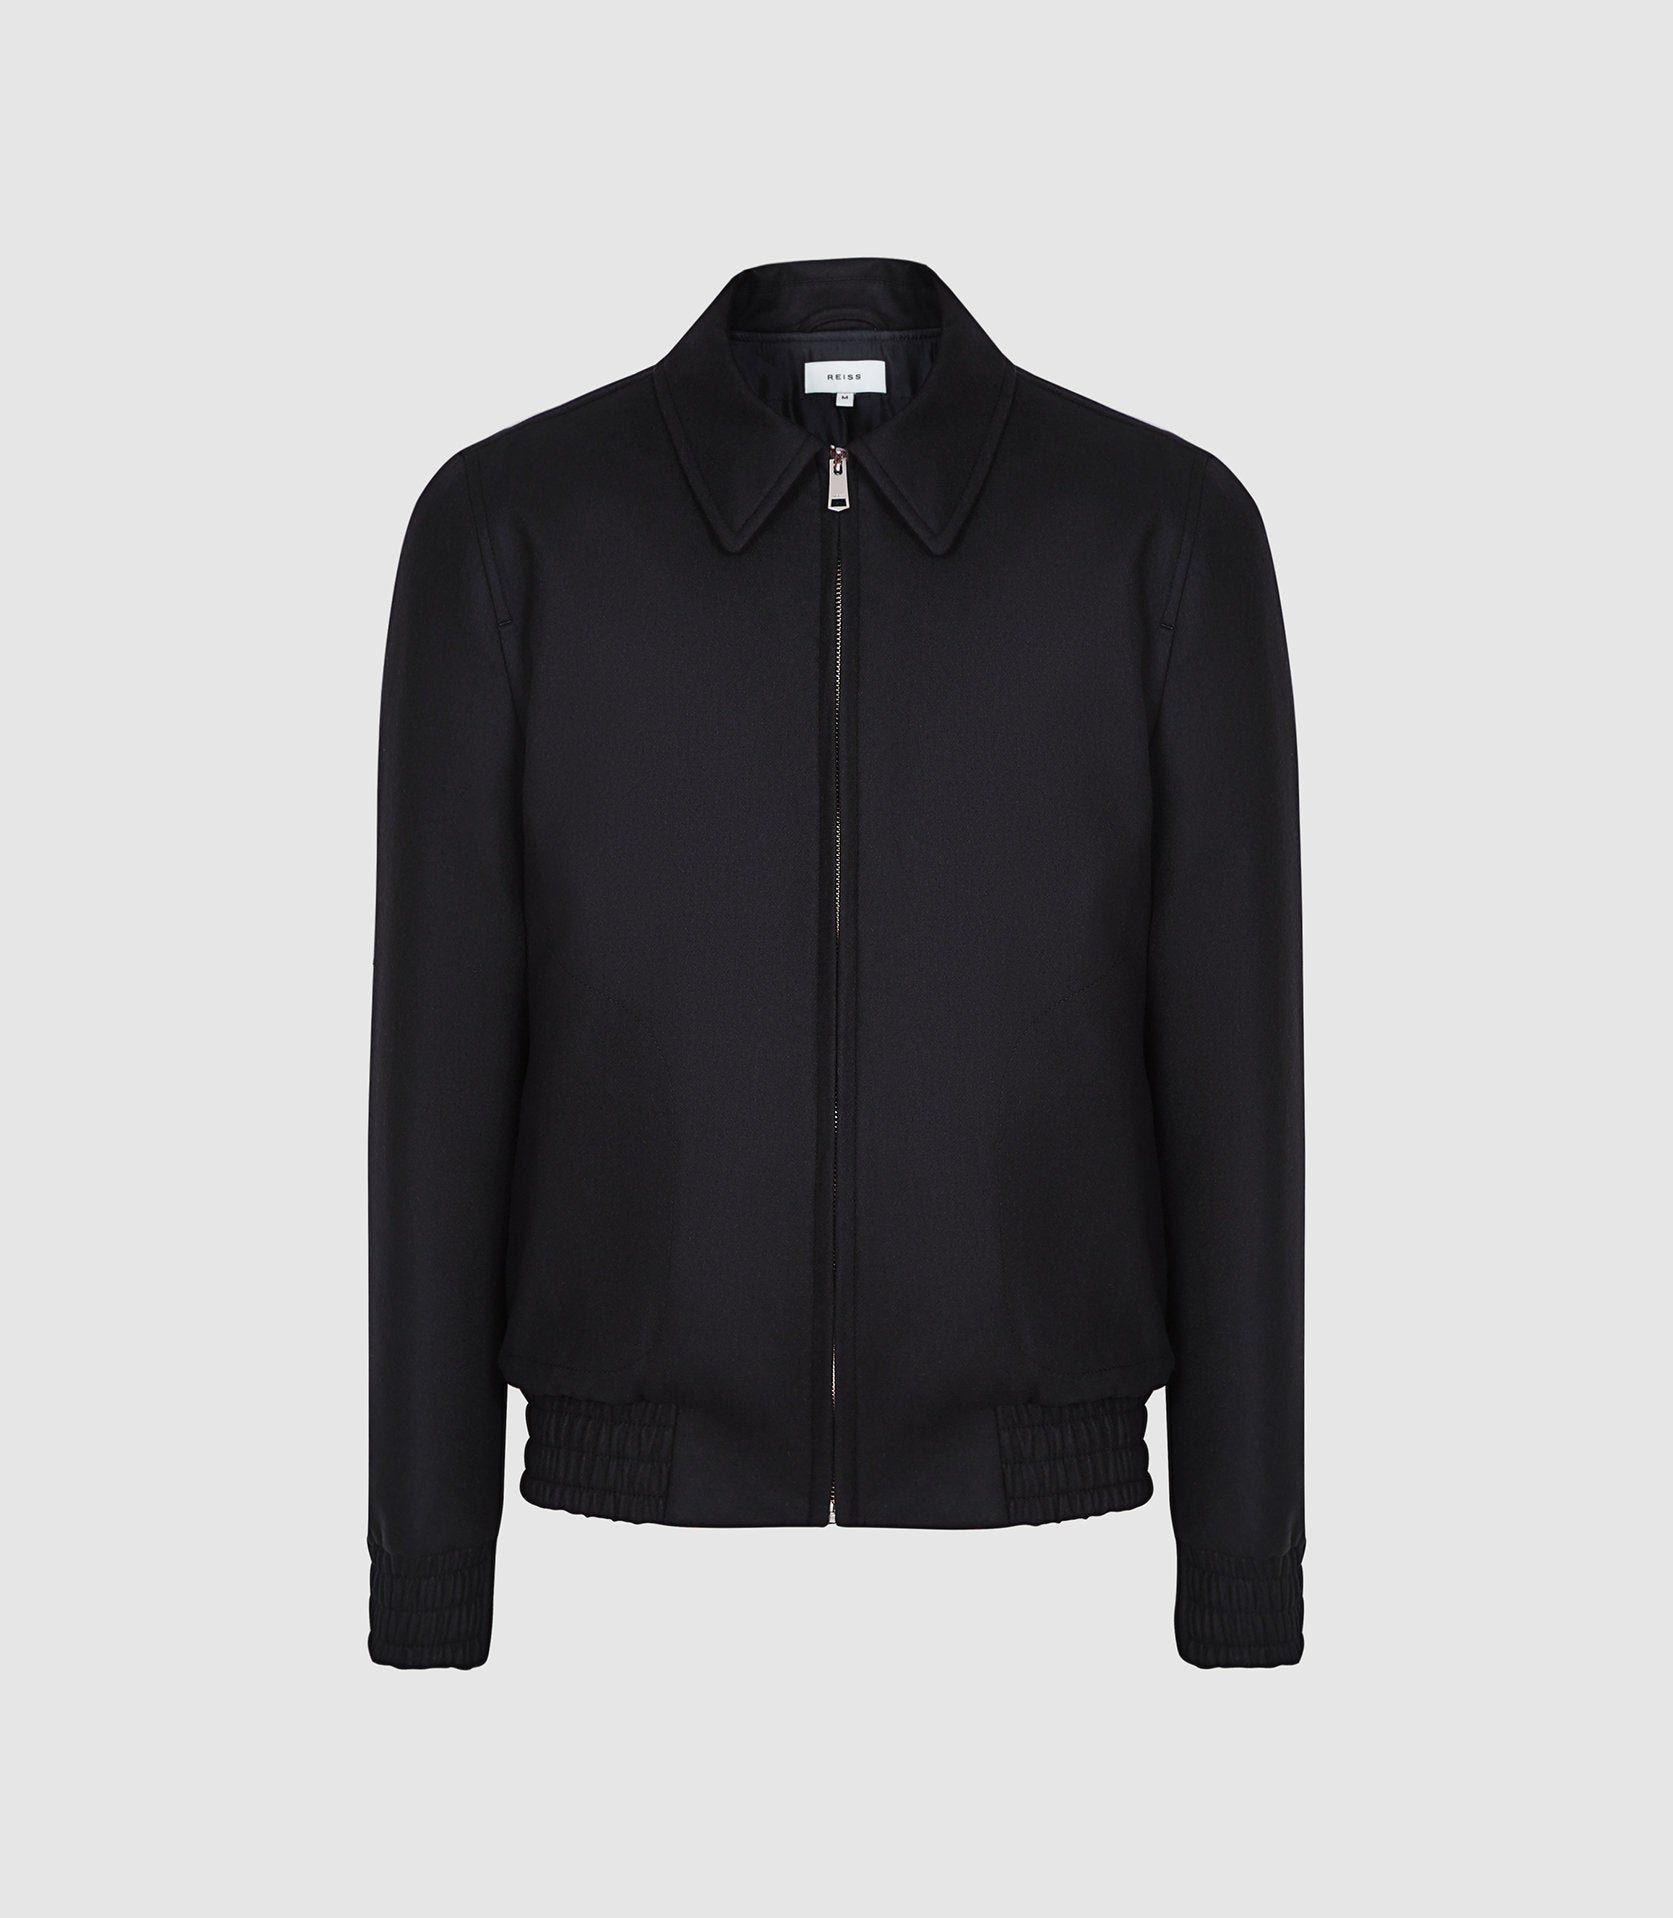 reiss mens jackets